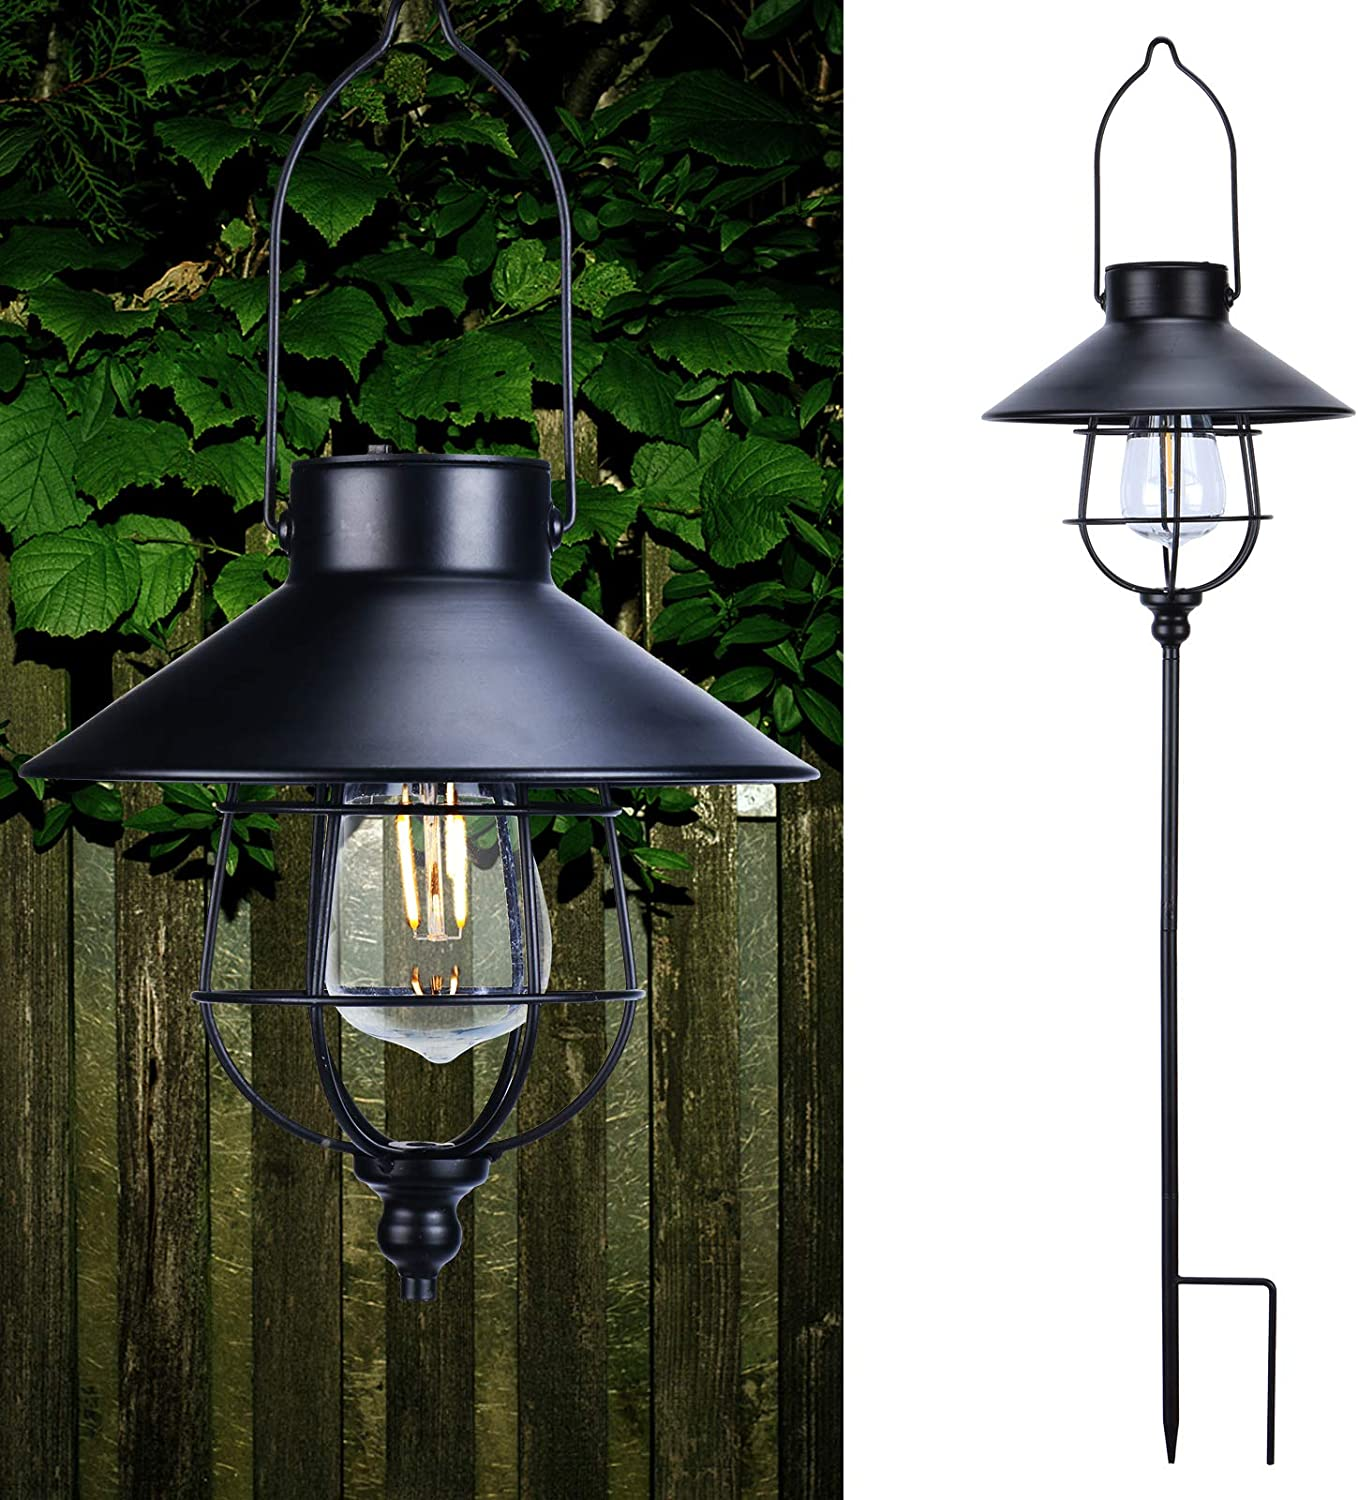 Afirst Hanging Solar Pathway Lights Outdoor LED Waterproof Solar Lantern Light Garden Patio Lawn Yard Walkway Landscape Decoration Black 1 Pack